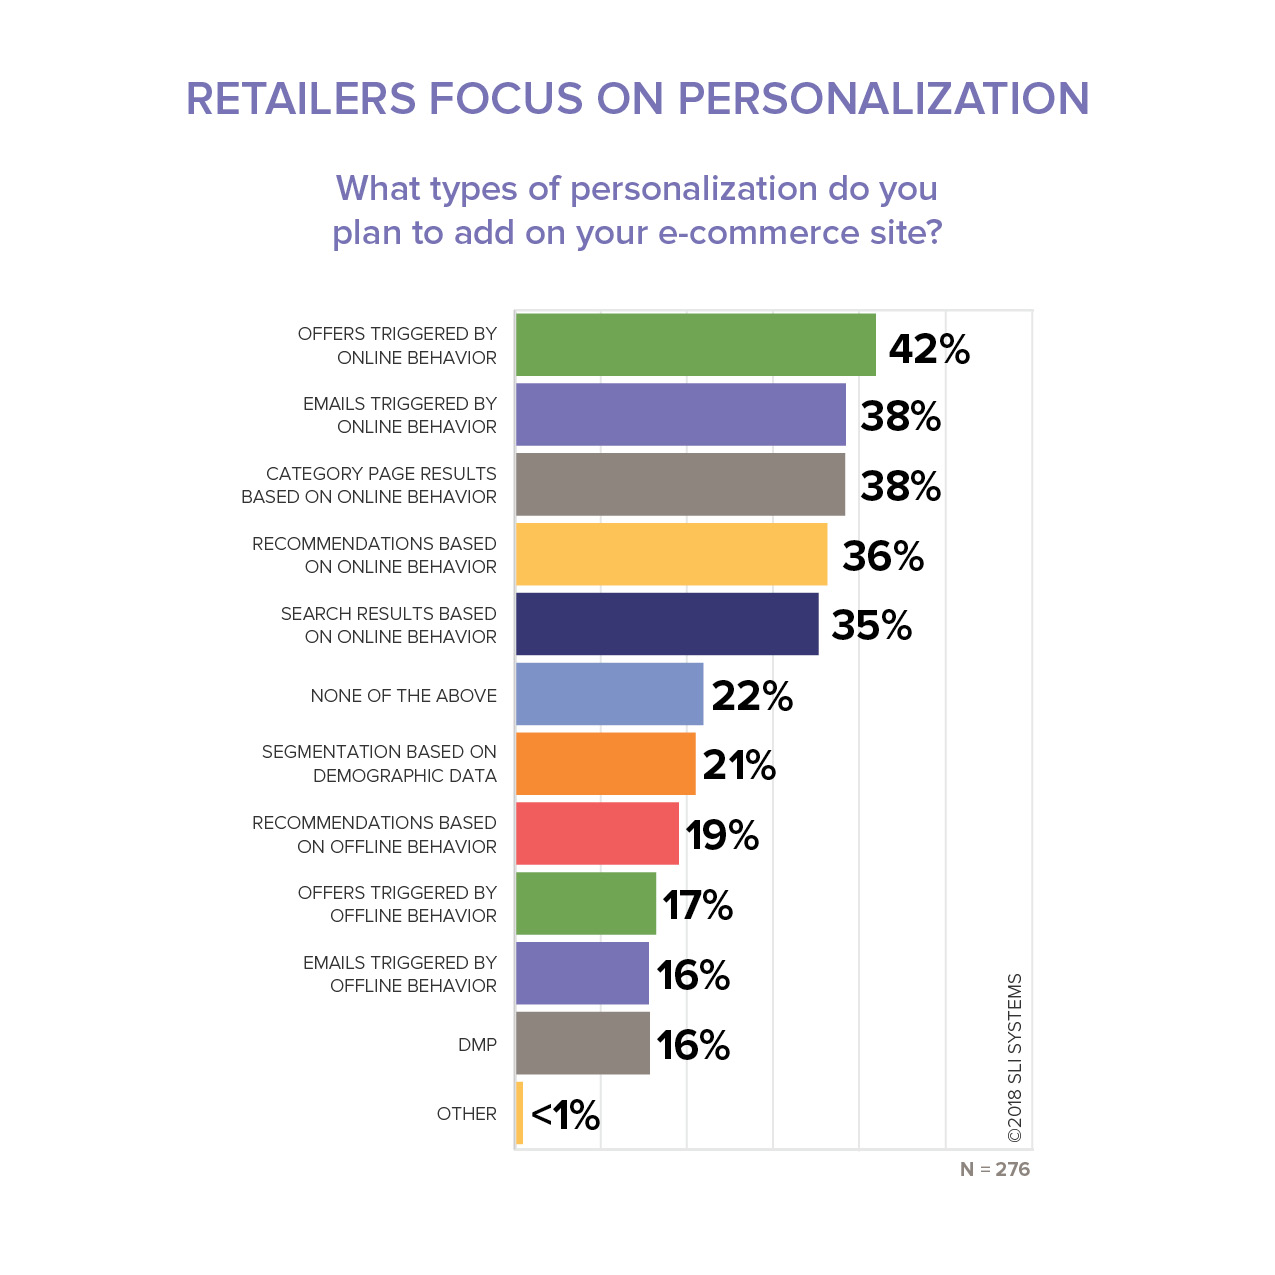 Retailer Focus on Personalization